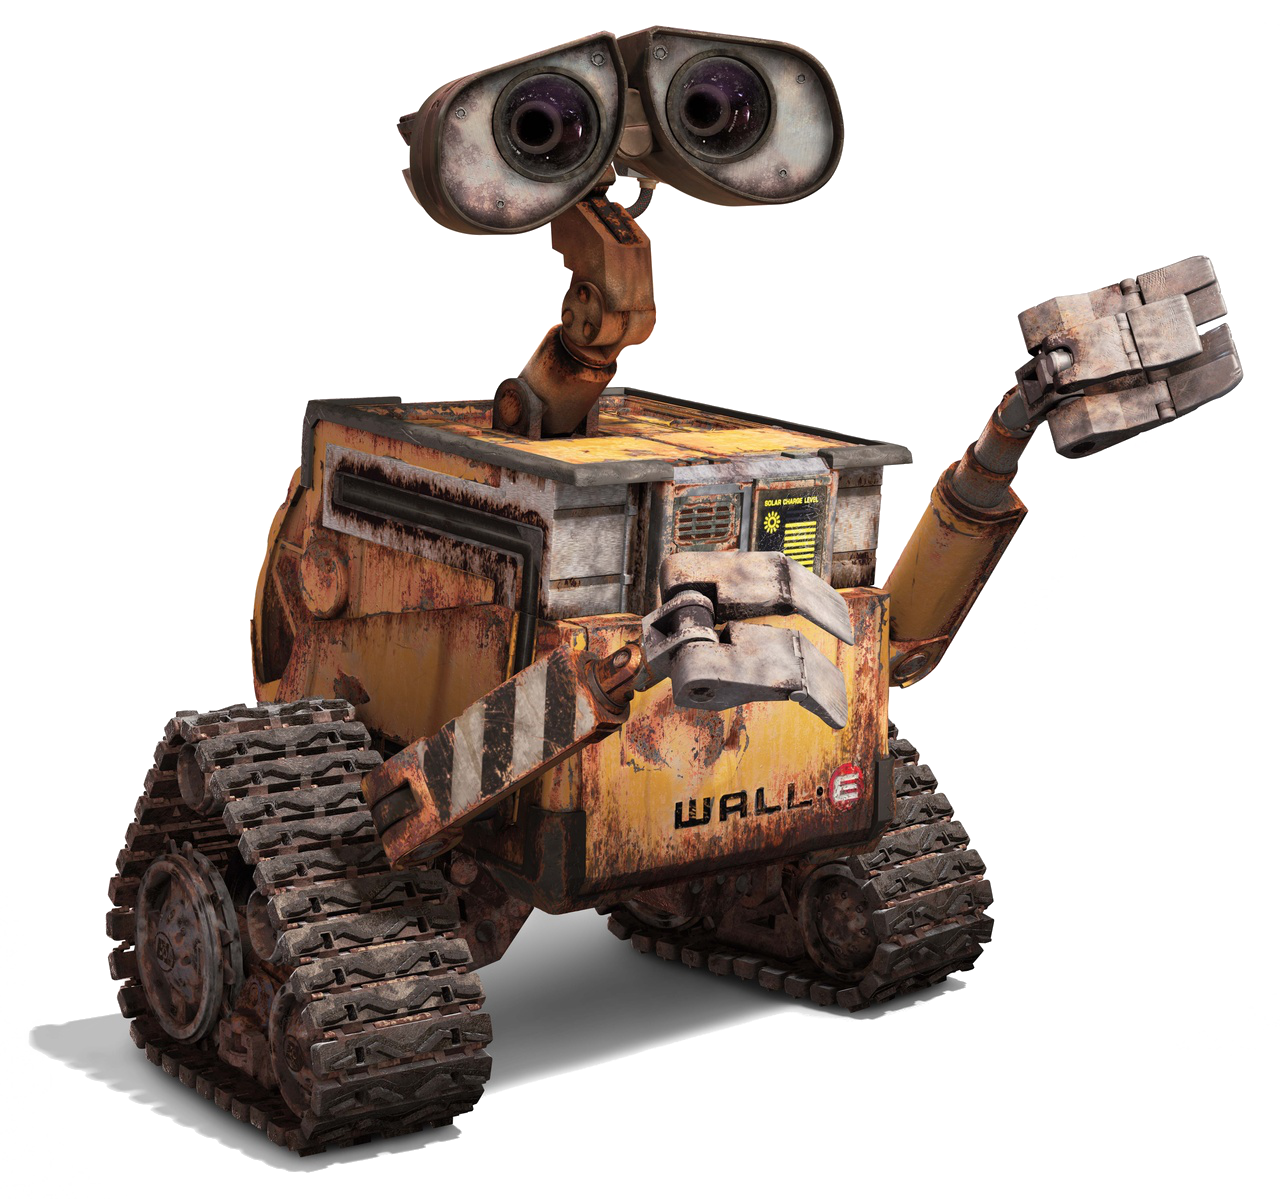 WALL-E (personagem)